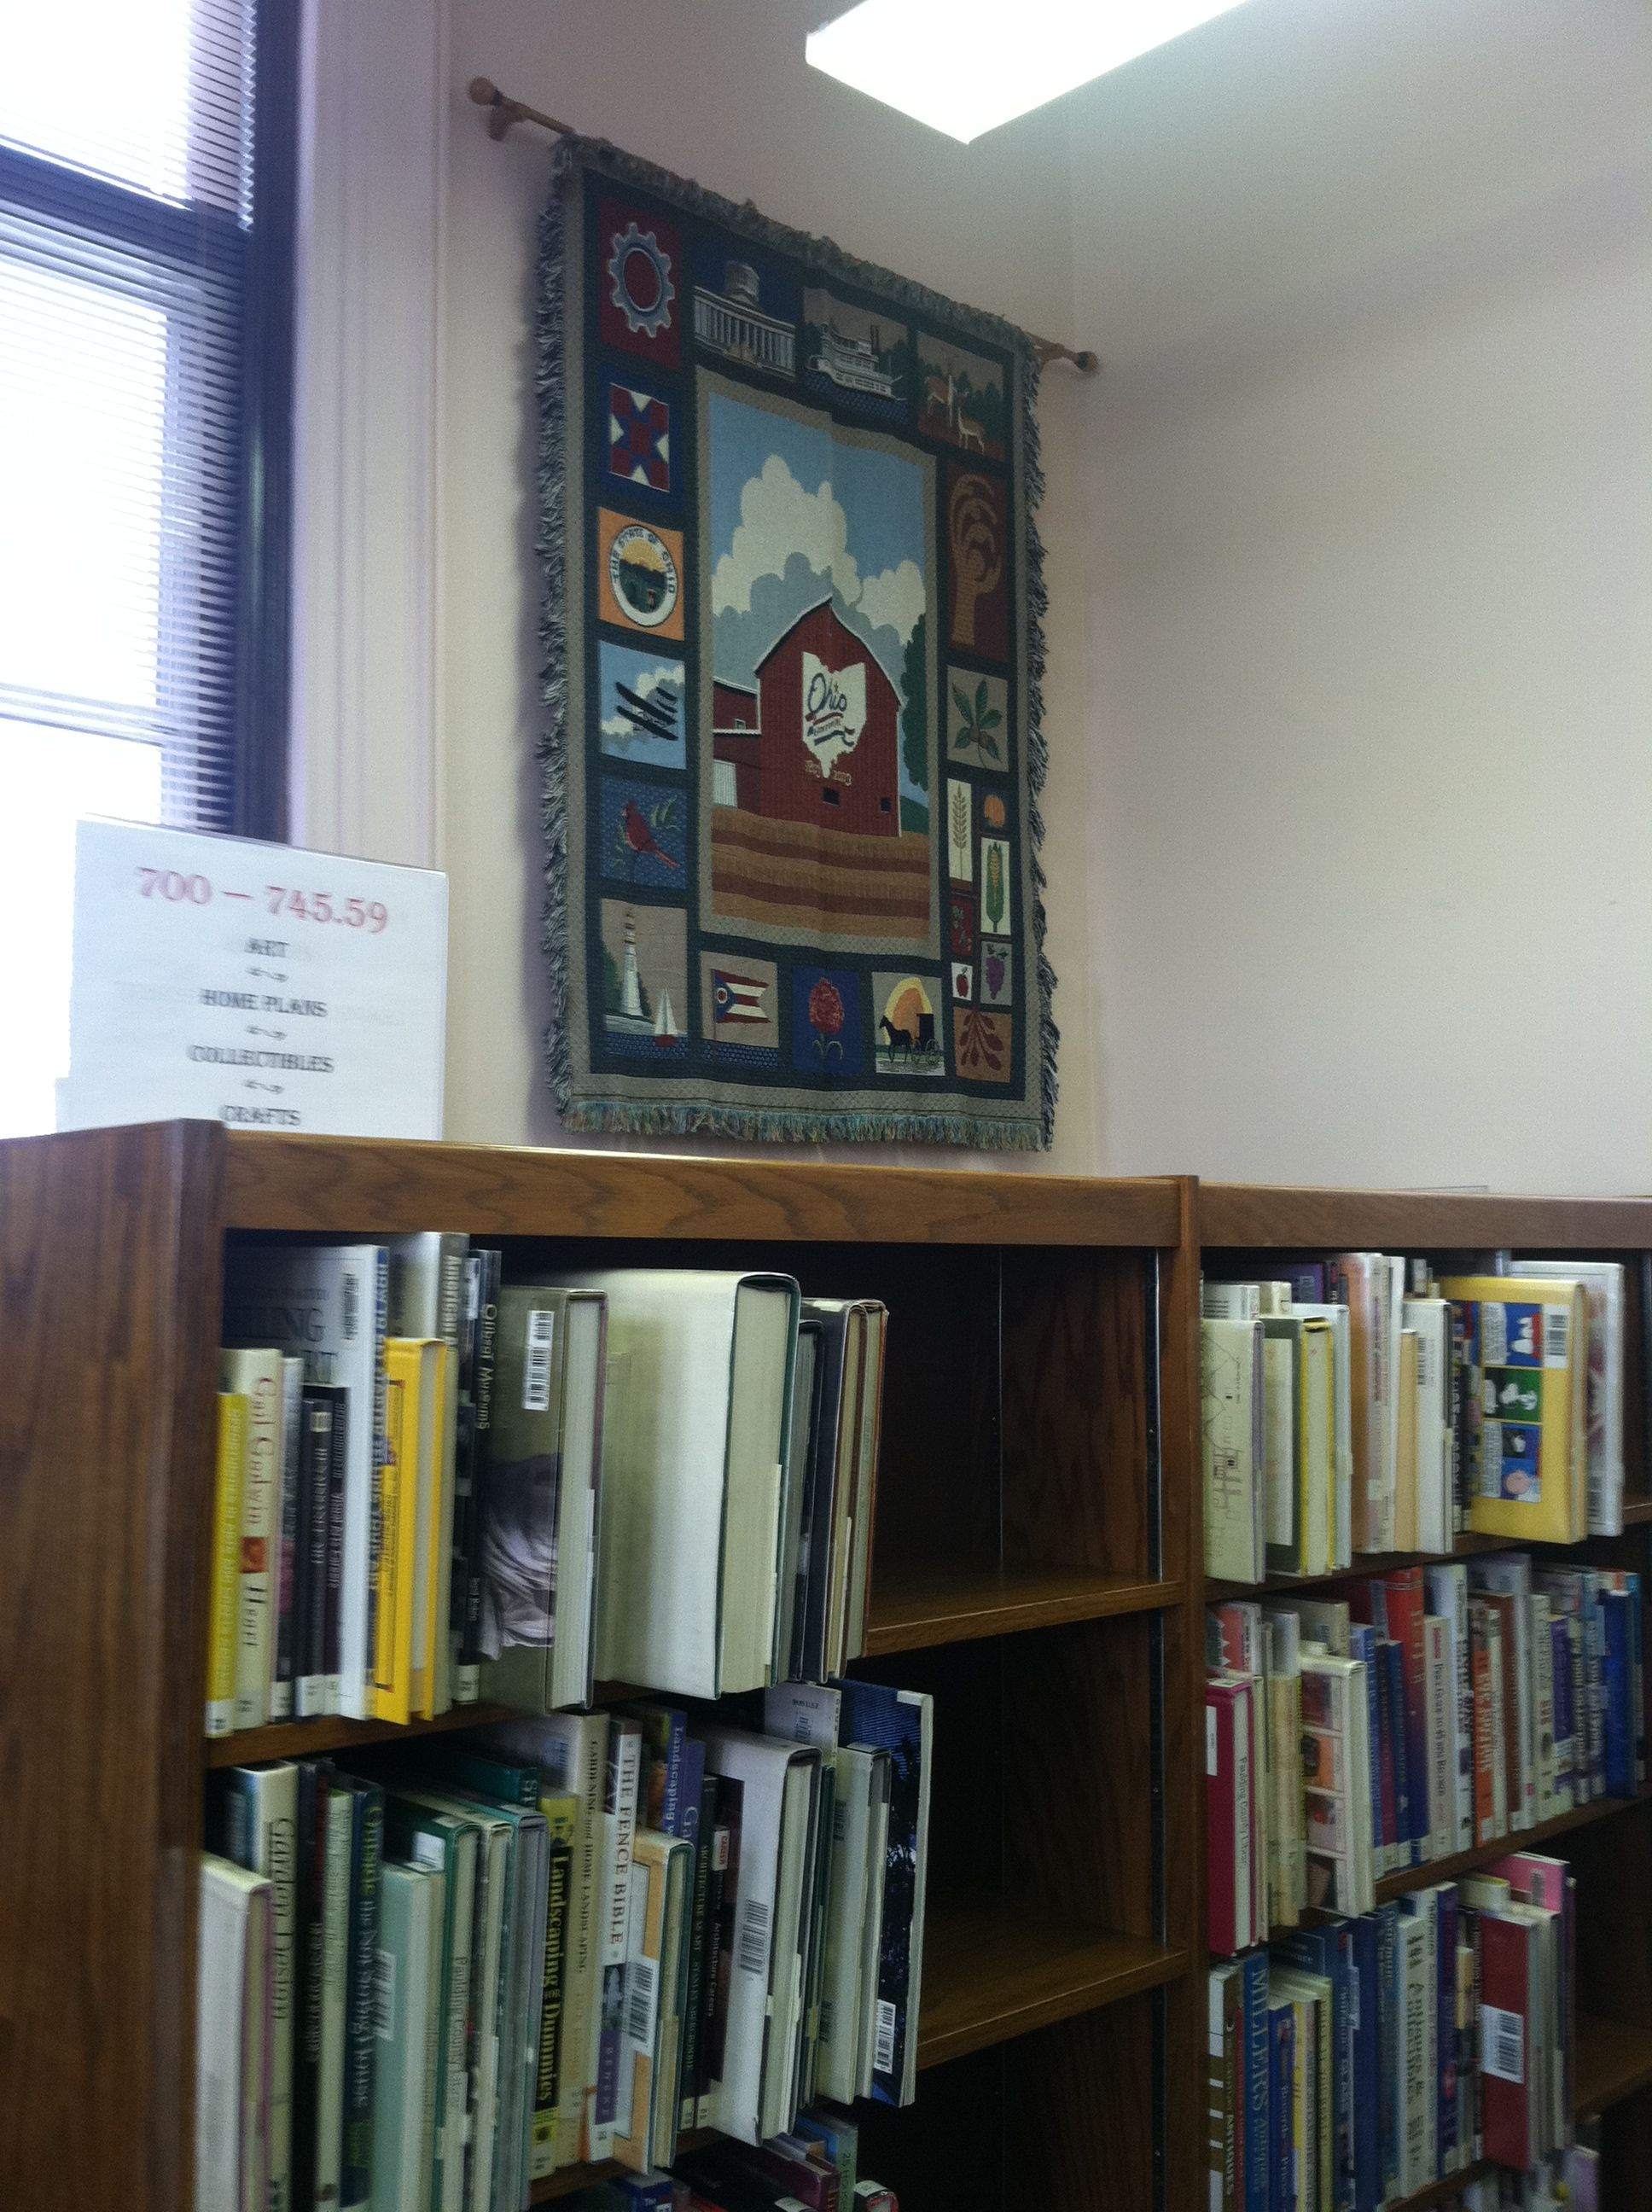 Hanging afghans on your library wall, especially with local or state significance, makes for a colorful display.